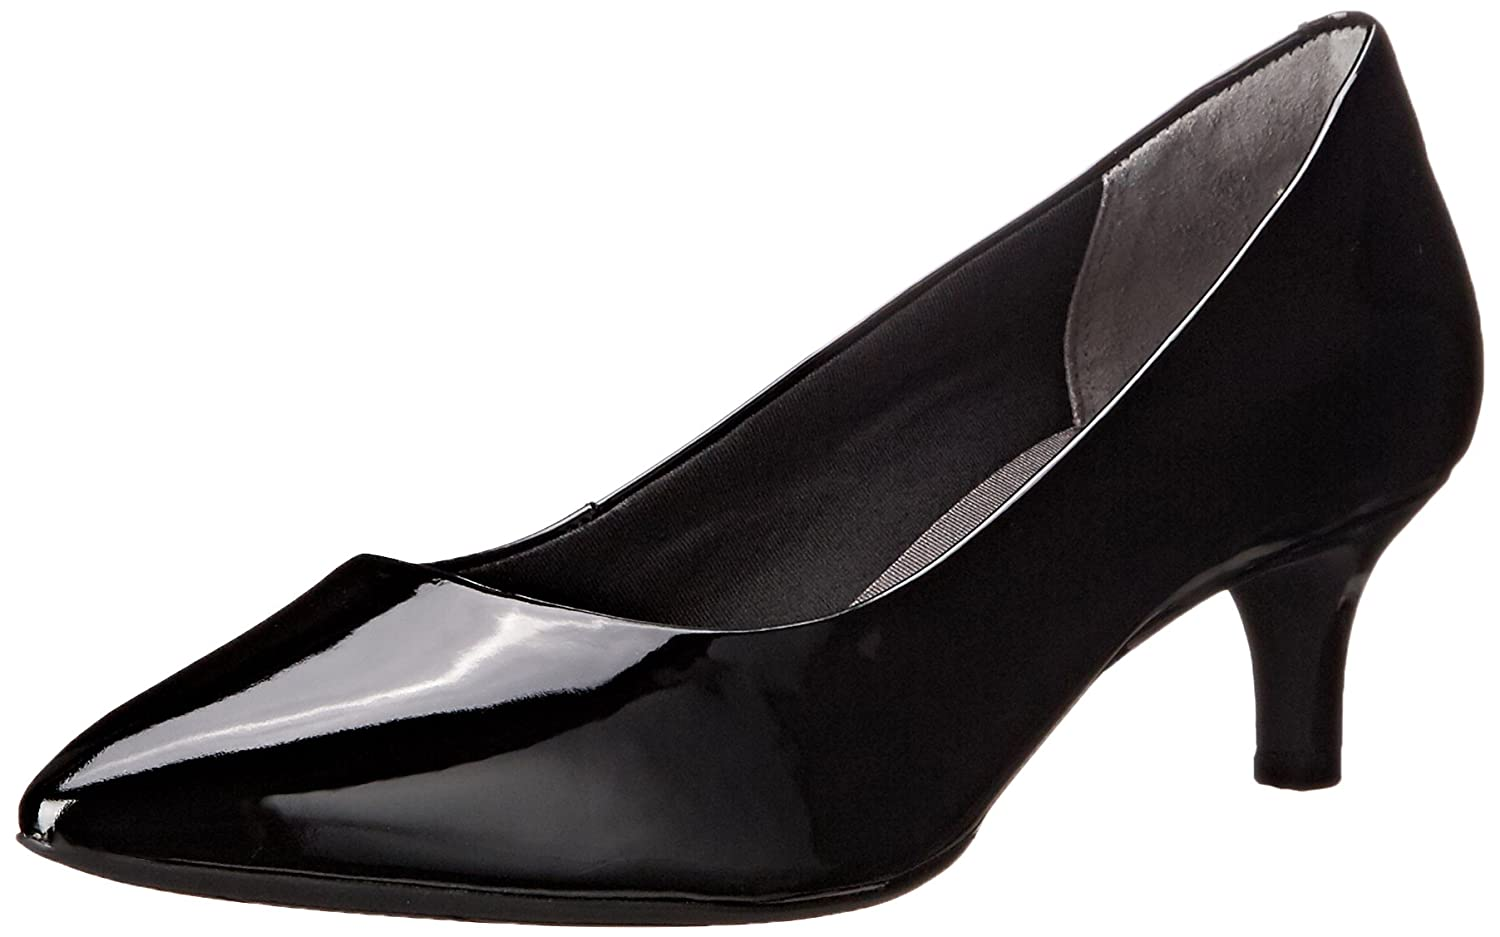 Rockport Women's Total Motion Kalila Dress Pump B013QSCB18 5.5 B(M) US|Black Patent